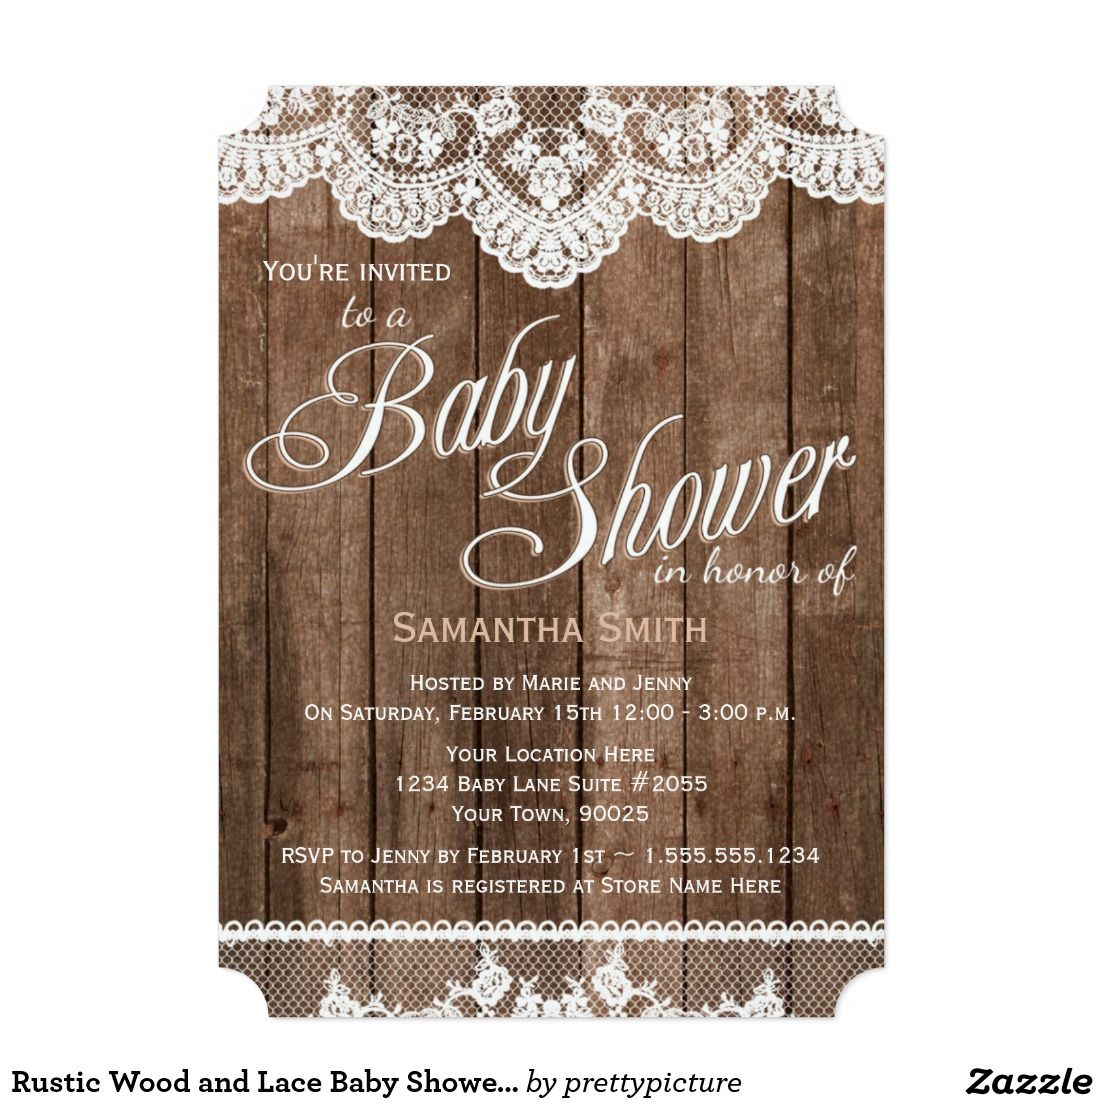 Rustic Wood and Lace Baby Shower Invitation | Lace baby shower ...